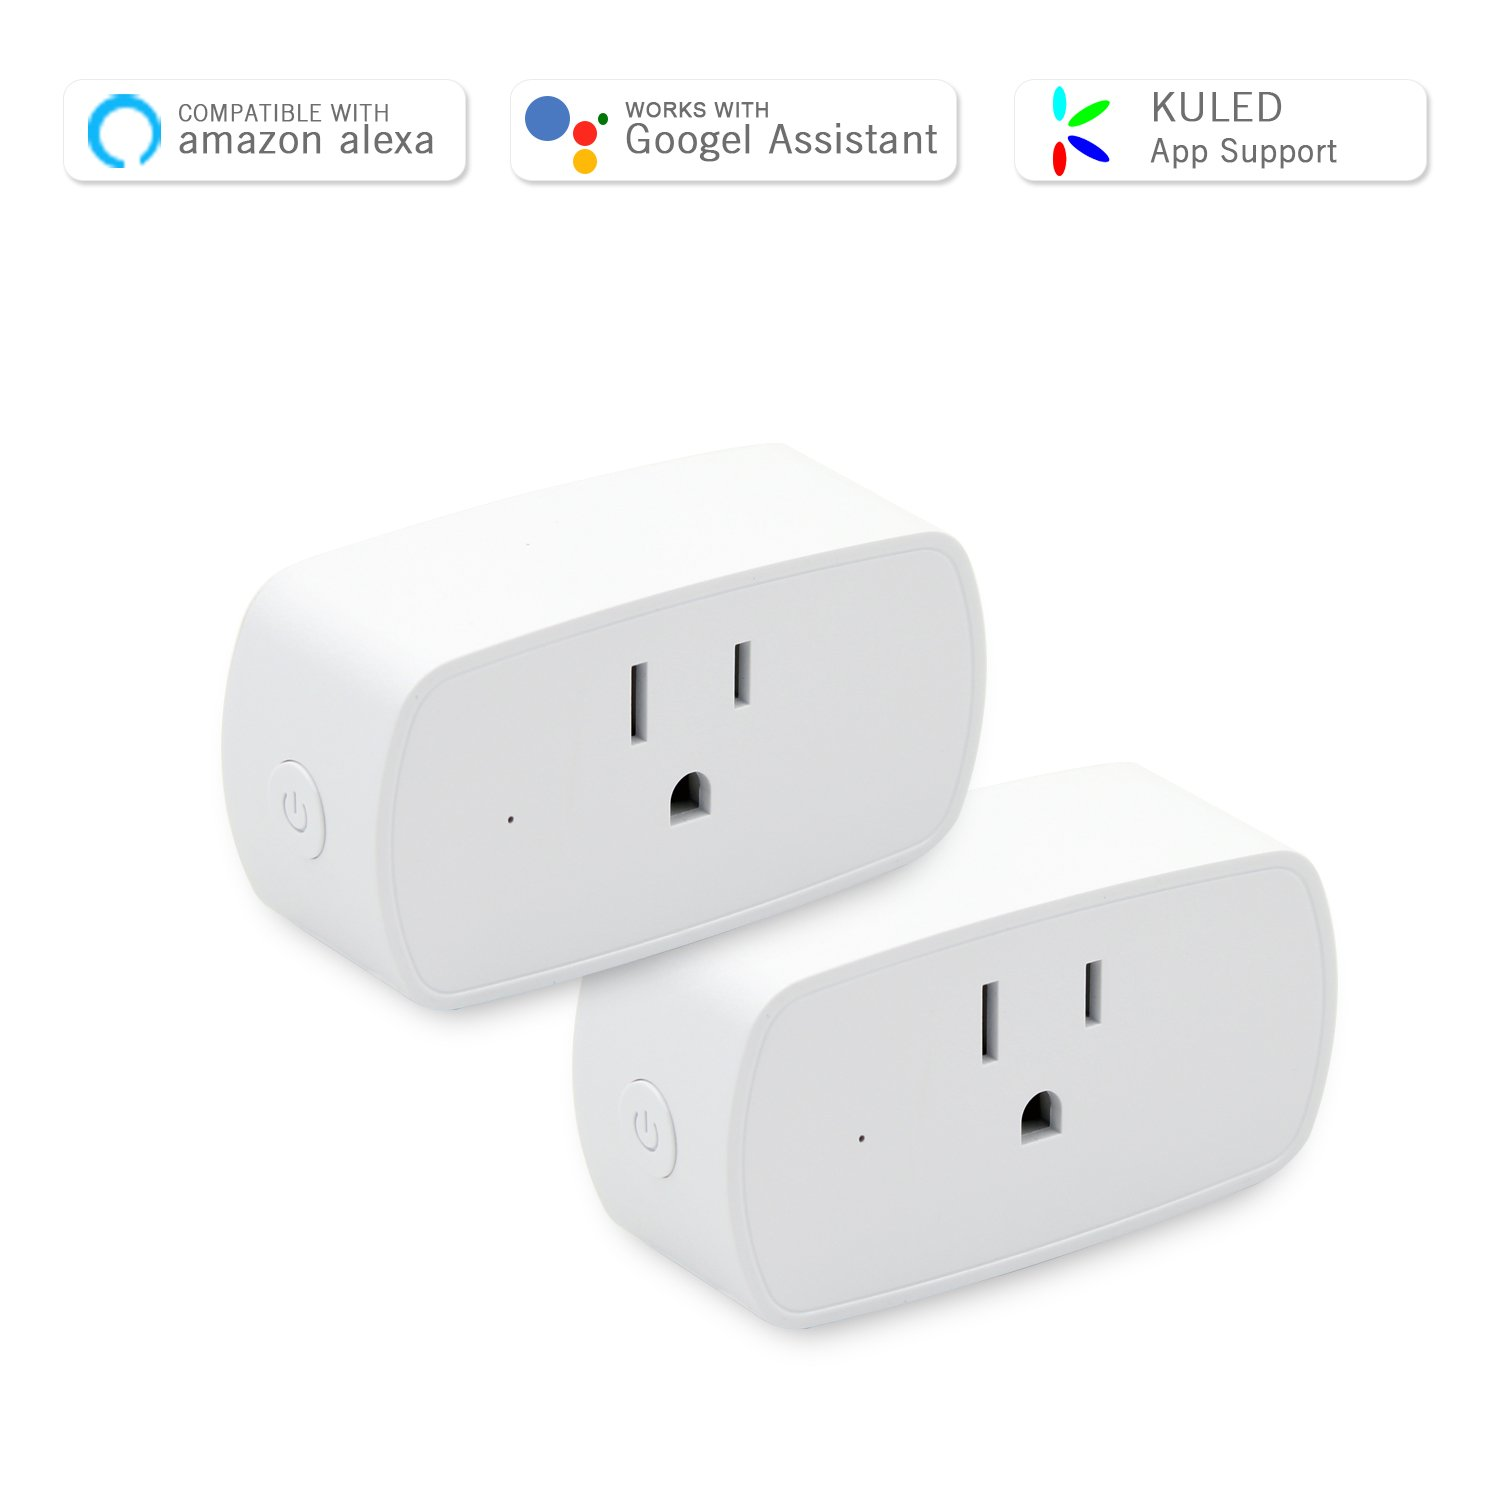 Smart Plug Mini Socket, Wi-Fi Outlet Compatible with Amazon Alexa and Google Home Assistant, No Hub Required, Remote Control Your Device from Anywhere Anytime Kuled 2 Pack